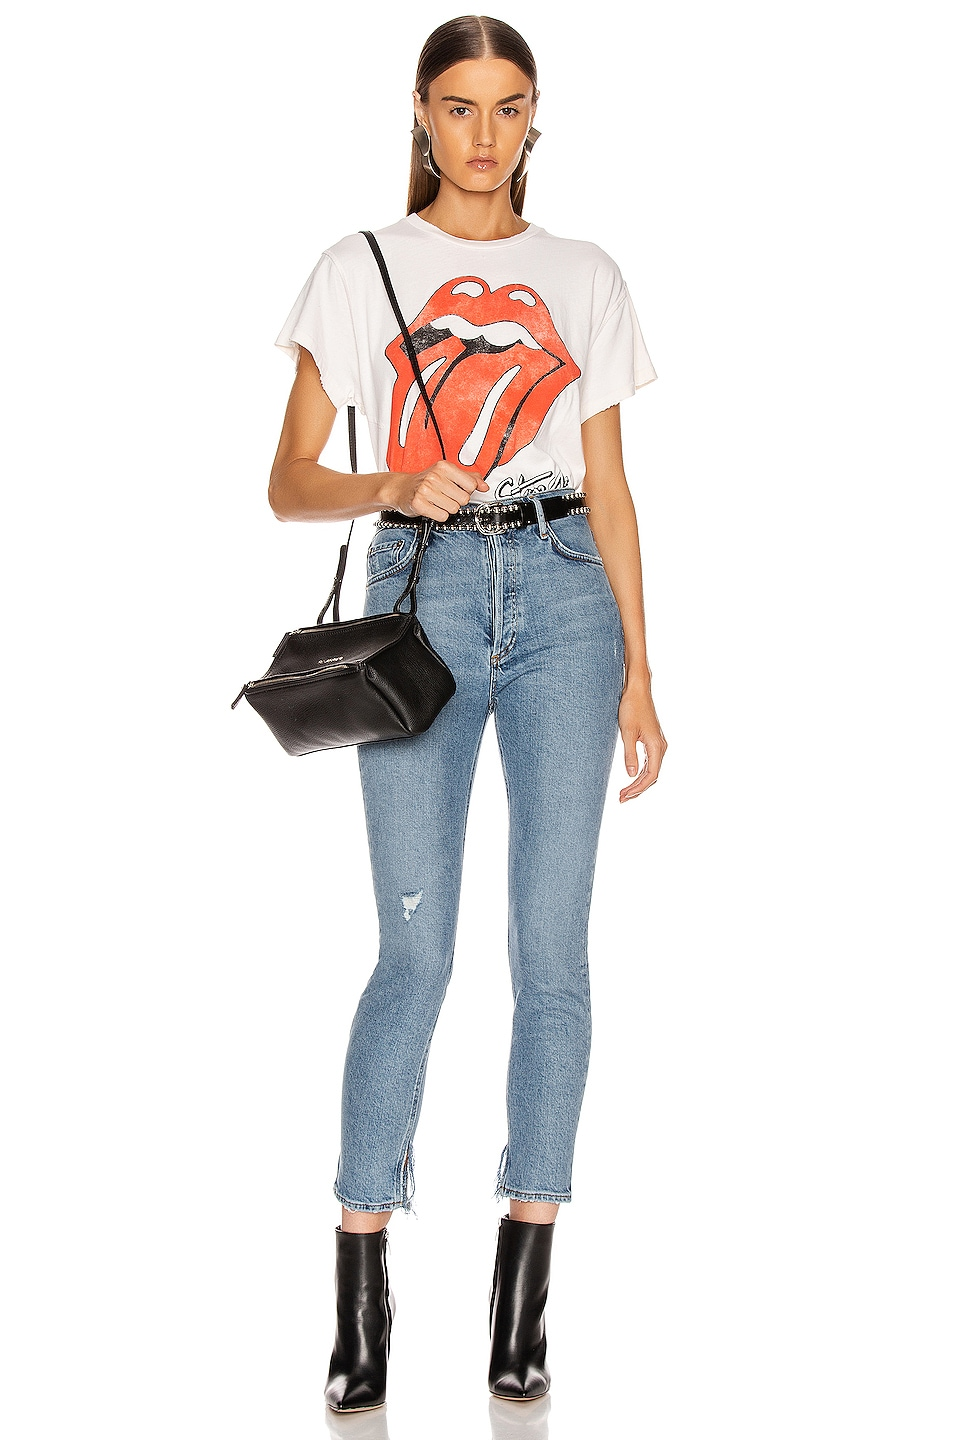 Image 5 of Madeworn Rolling Stones Classic Crew Tee in Off White